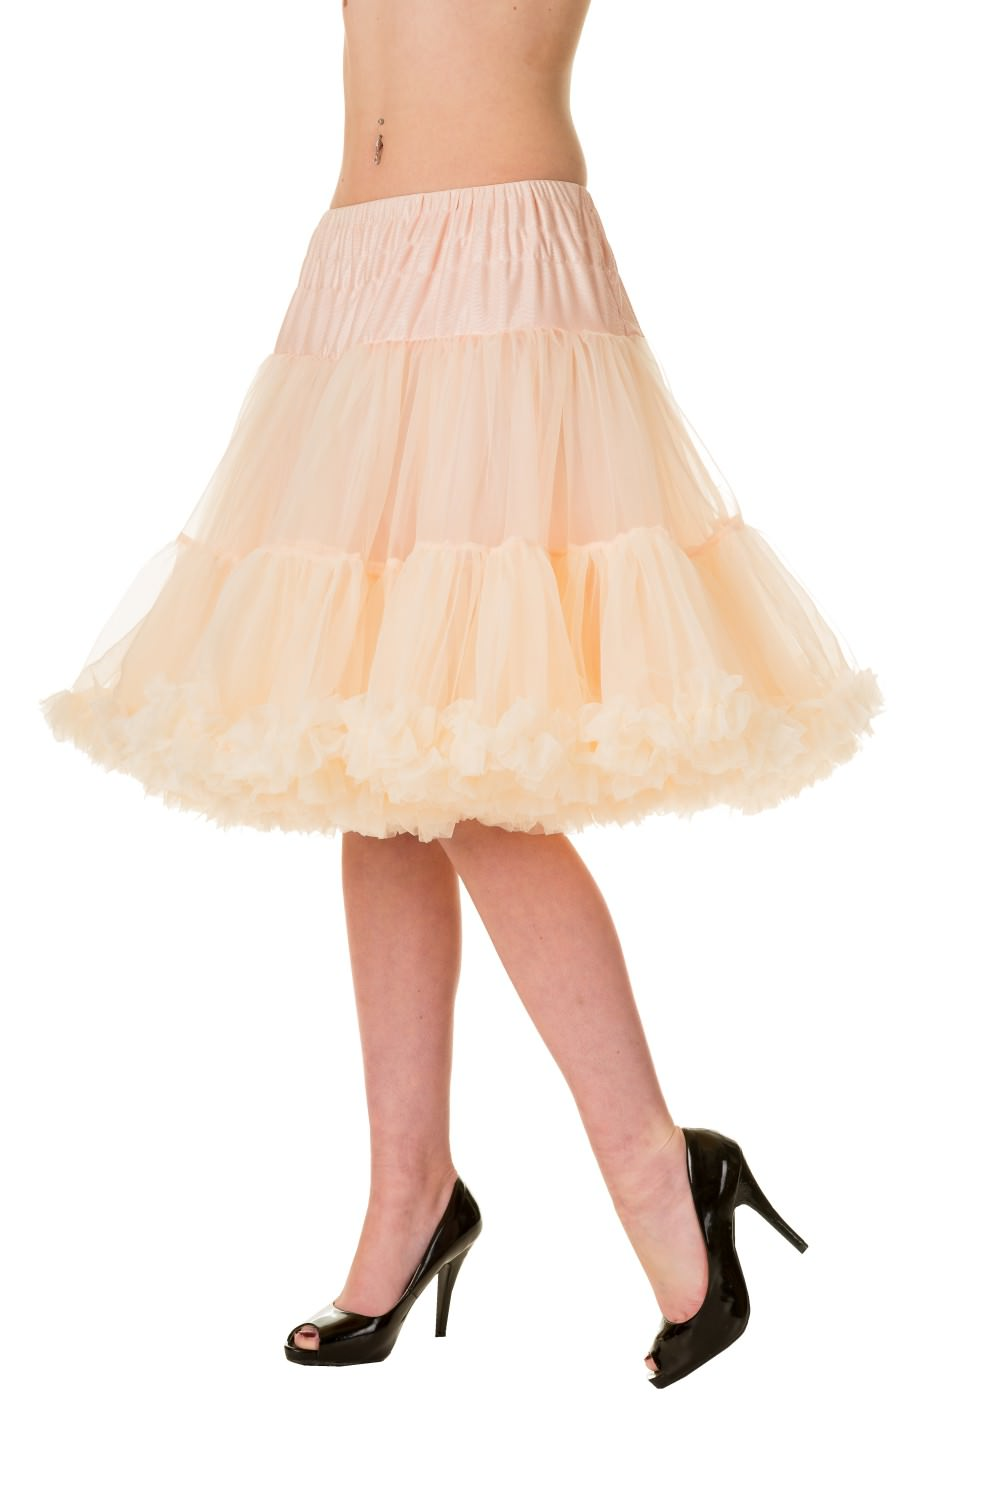 Walkabout Petticoat in Champagne